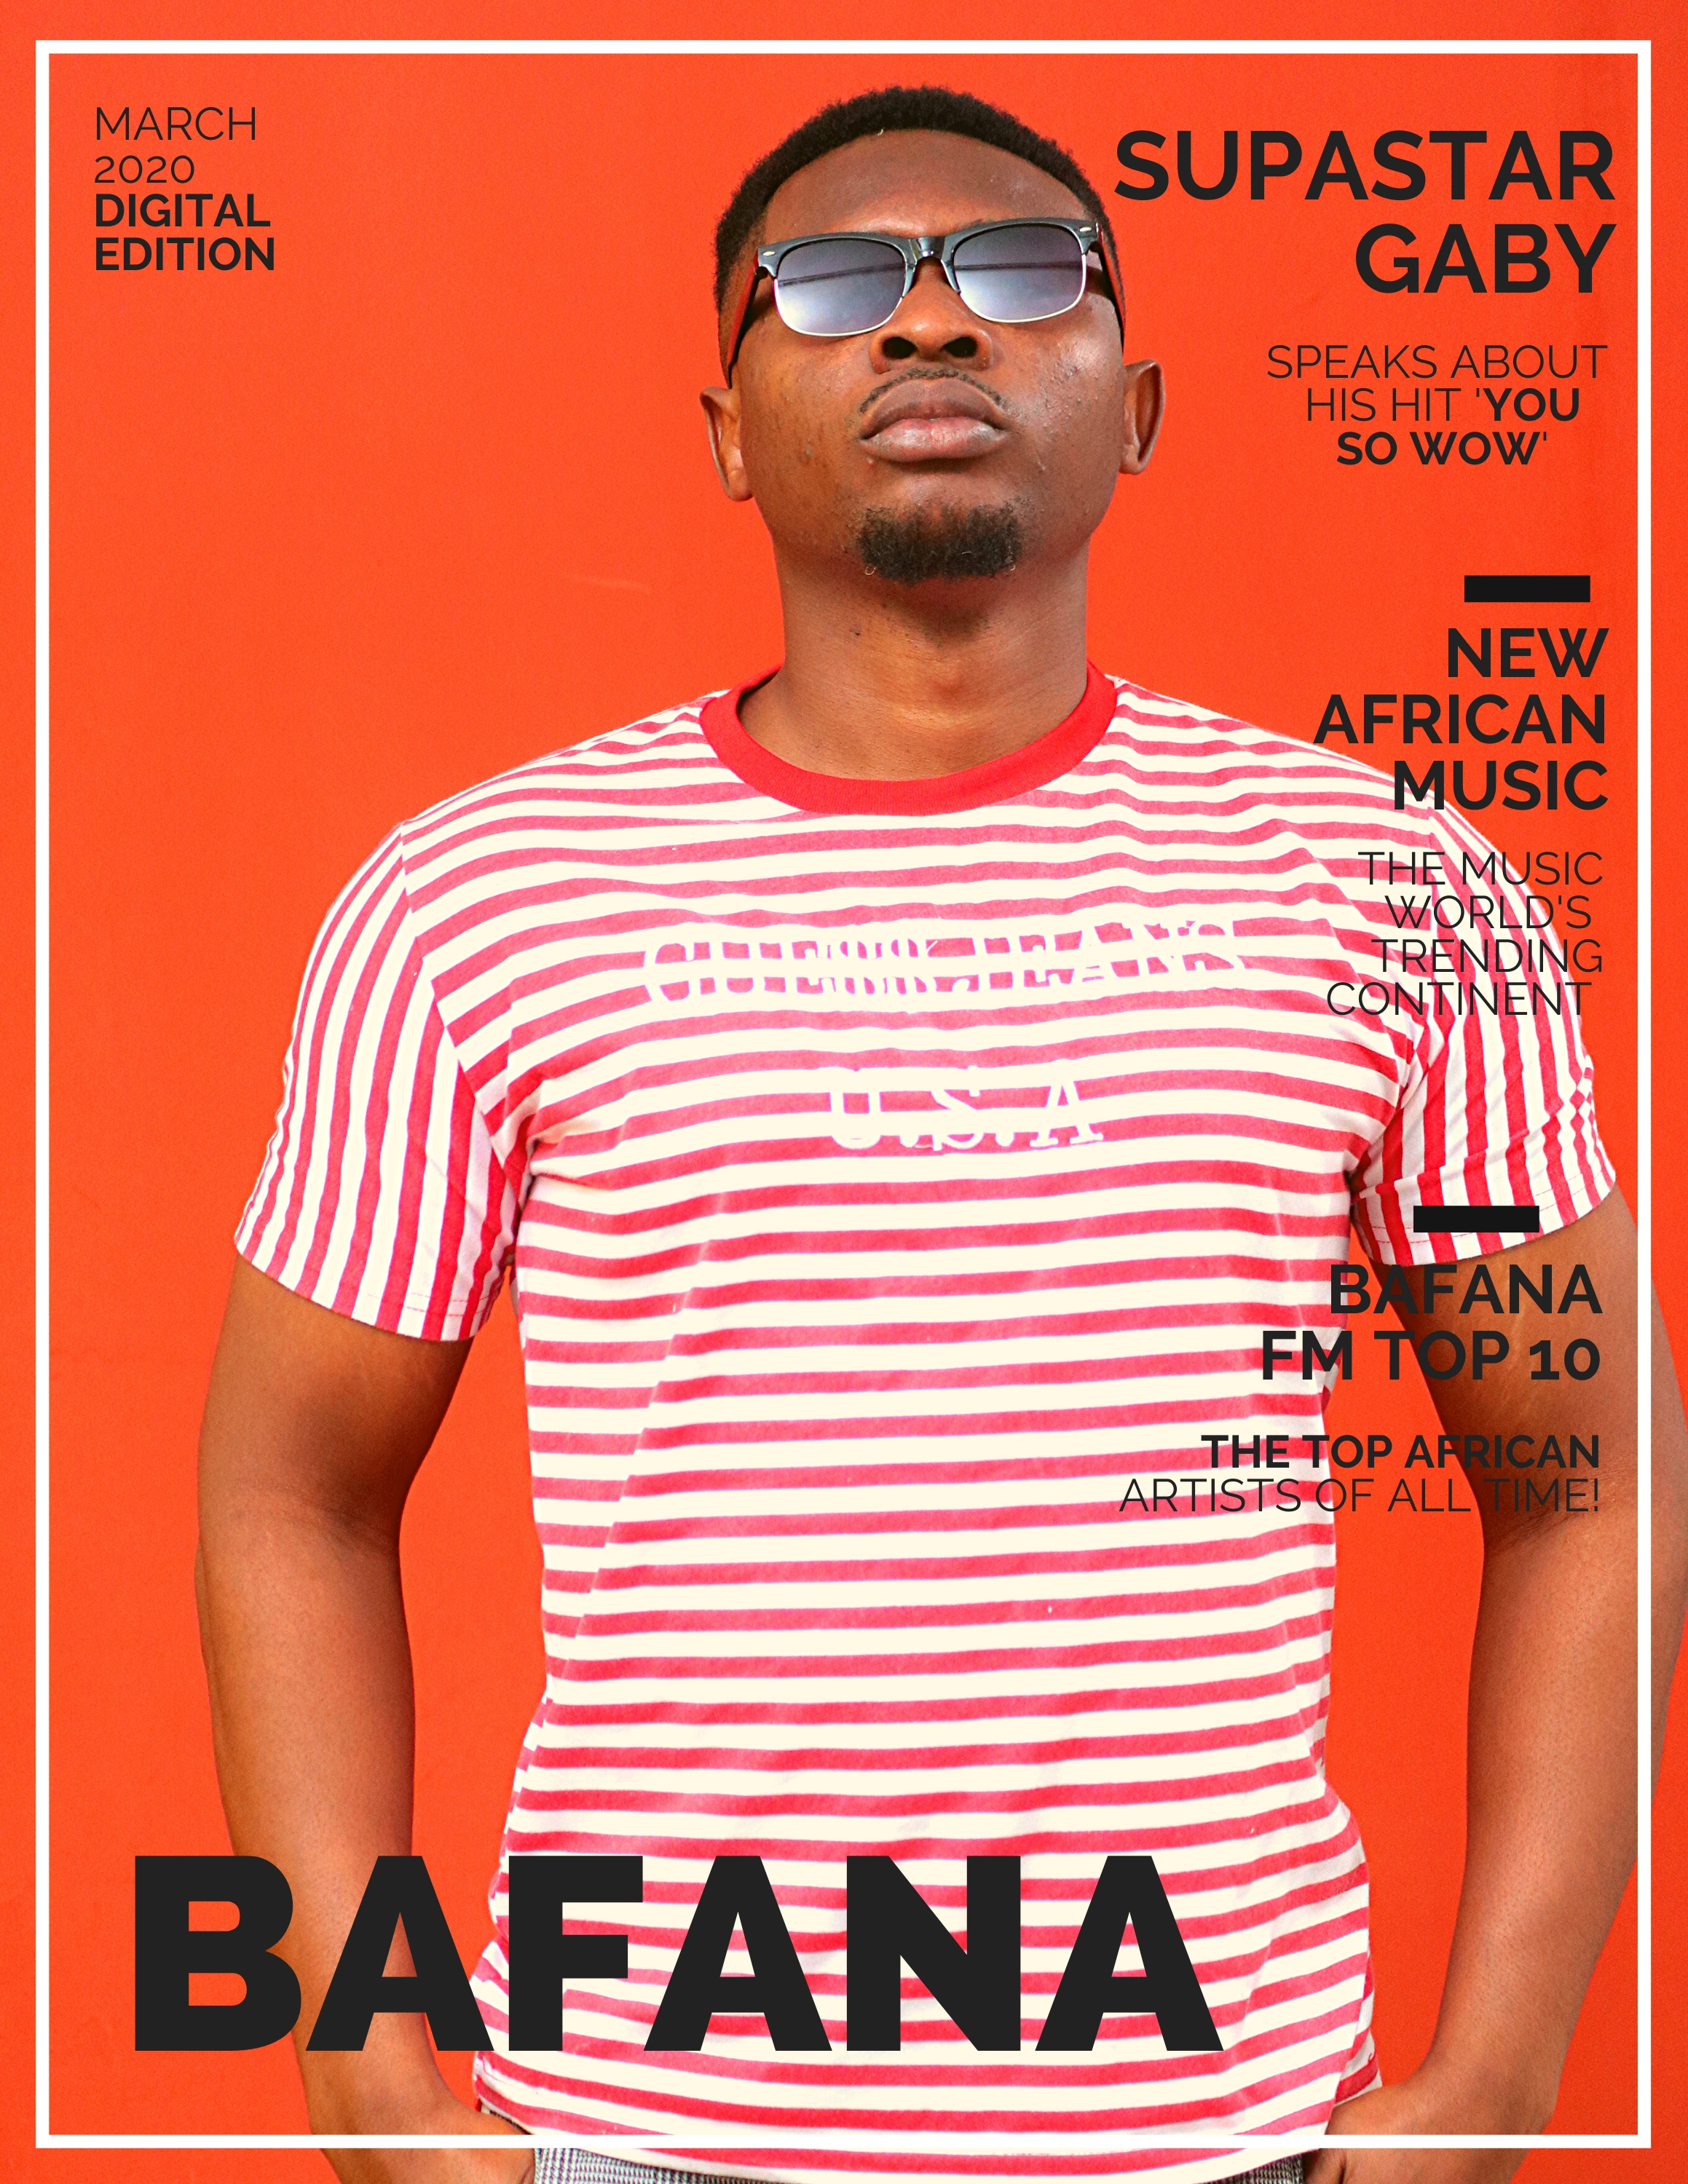 'Supastar Gaby' graces the Cover of the brand new 'Bafana' Magazine with style as he celebrates his global single 'You So Wow'